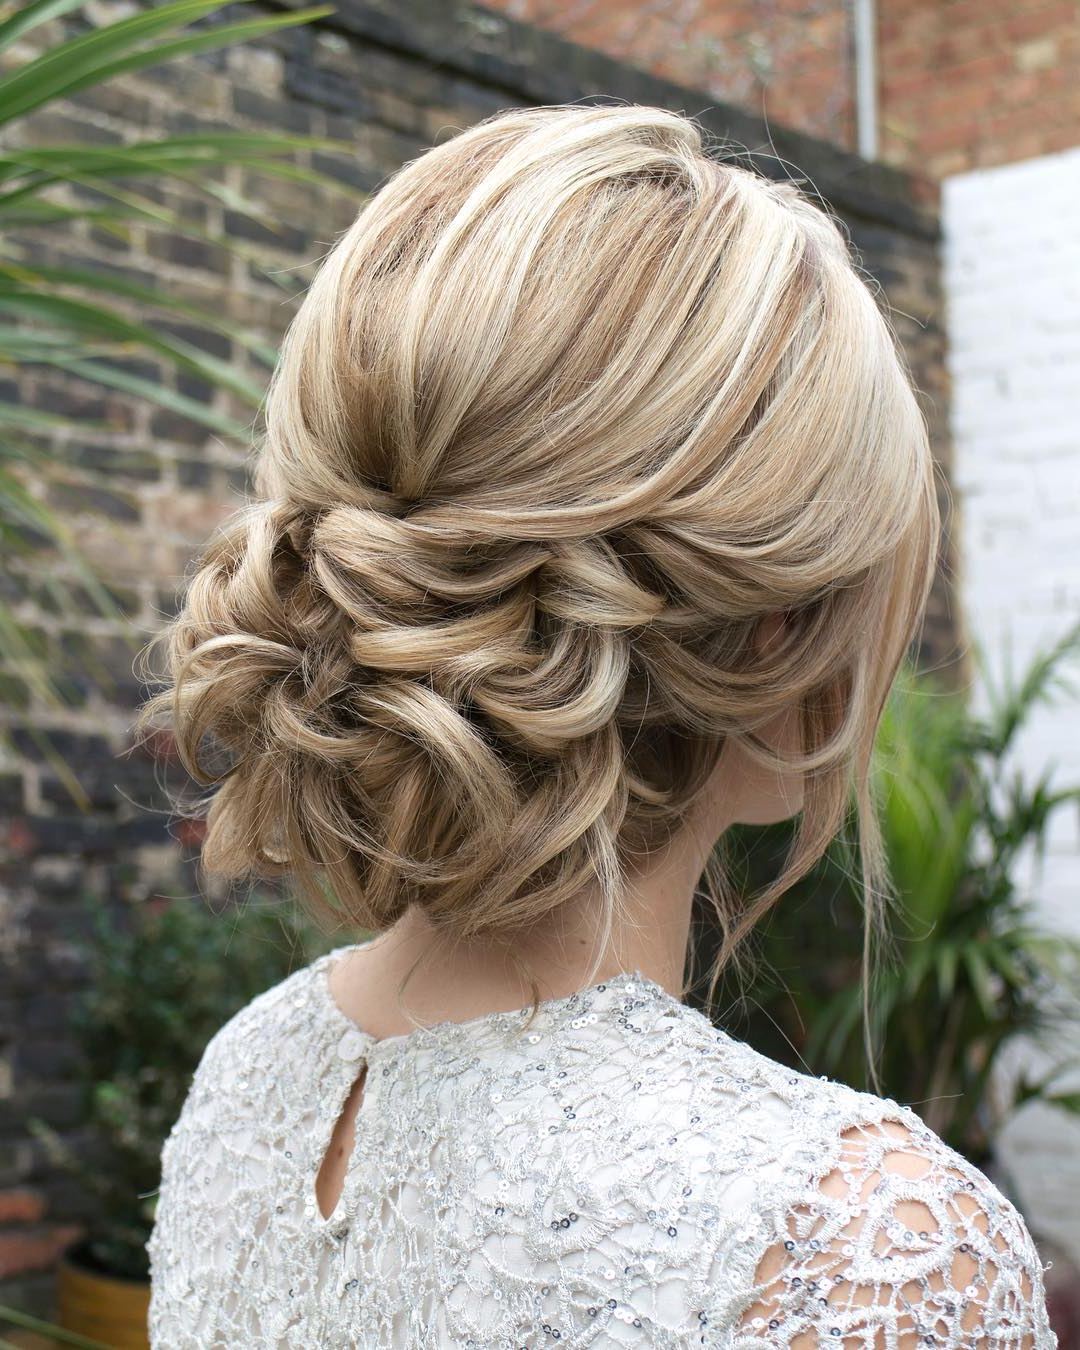 10 Gorgeous Prom Updos For Long Hair, Prom Updo Hairstyles 2019 With Regard To 2017 Elegant Twist Updo Prom Hairstyles (View 2 of 20)